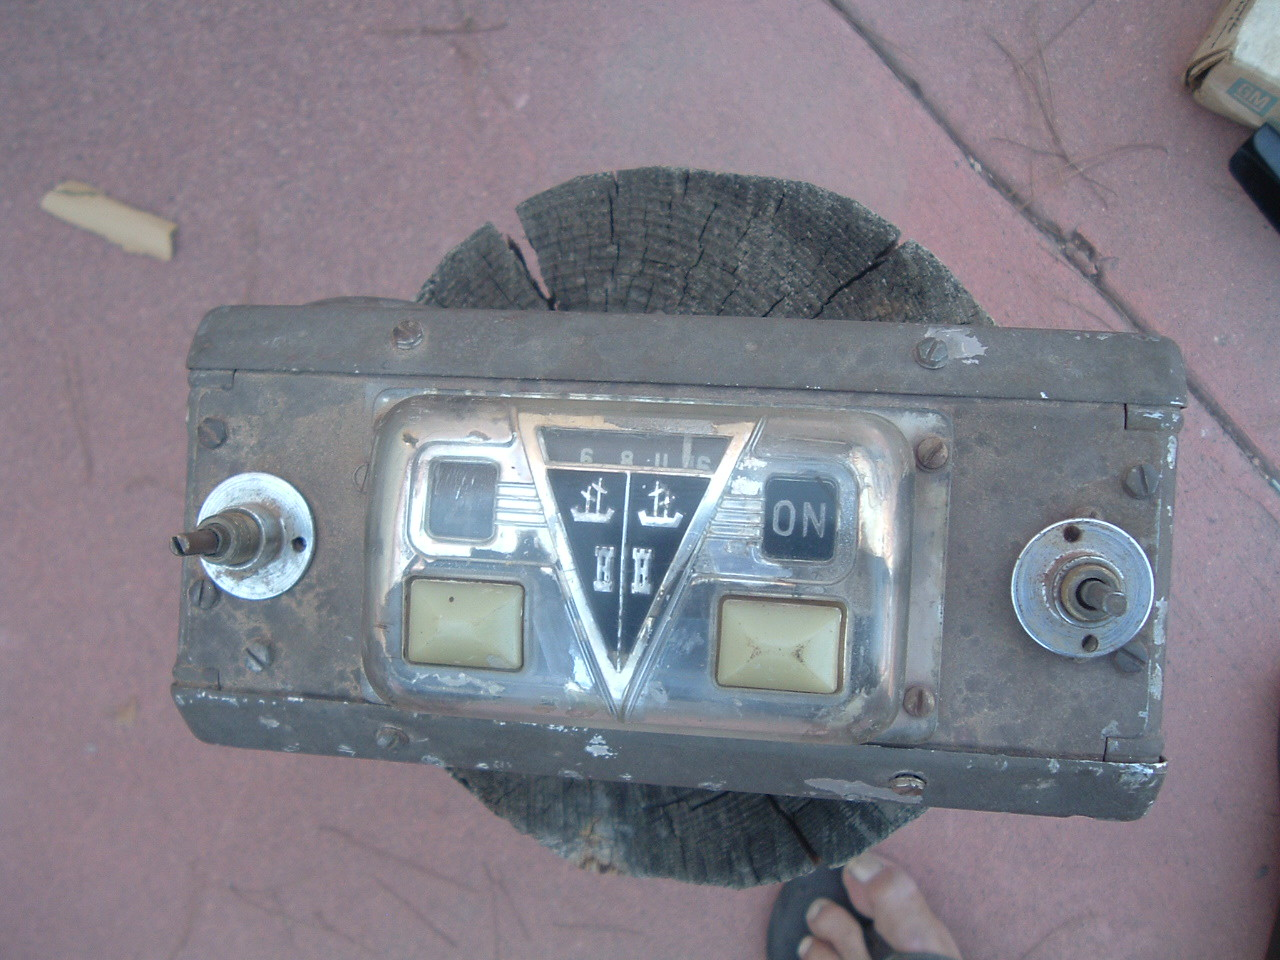 1946 1947 Hudson AM Radio Part DB46 & ZH-28991 Used Original Commodore Model 58 (z 46-7hudsonradio)